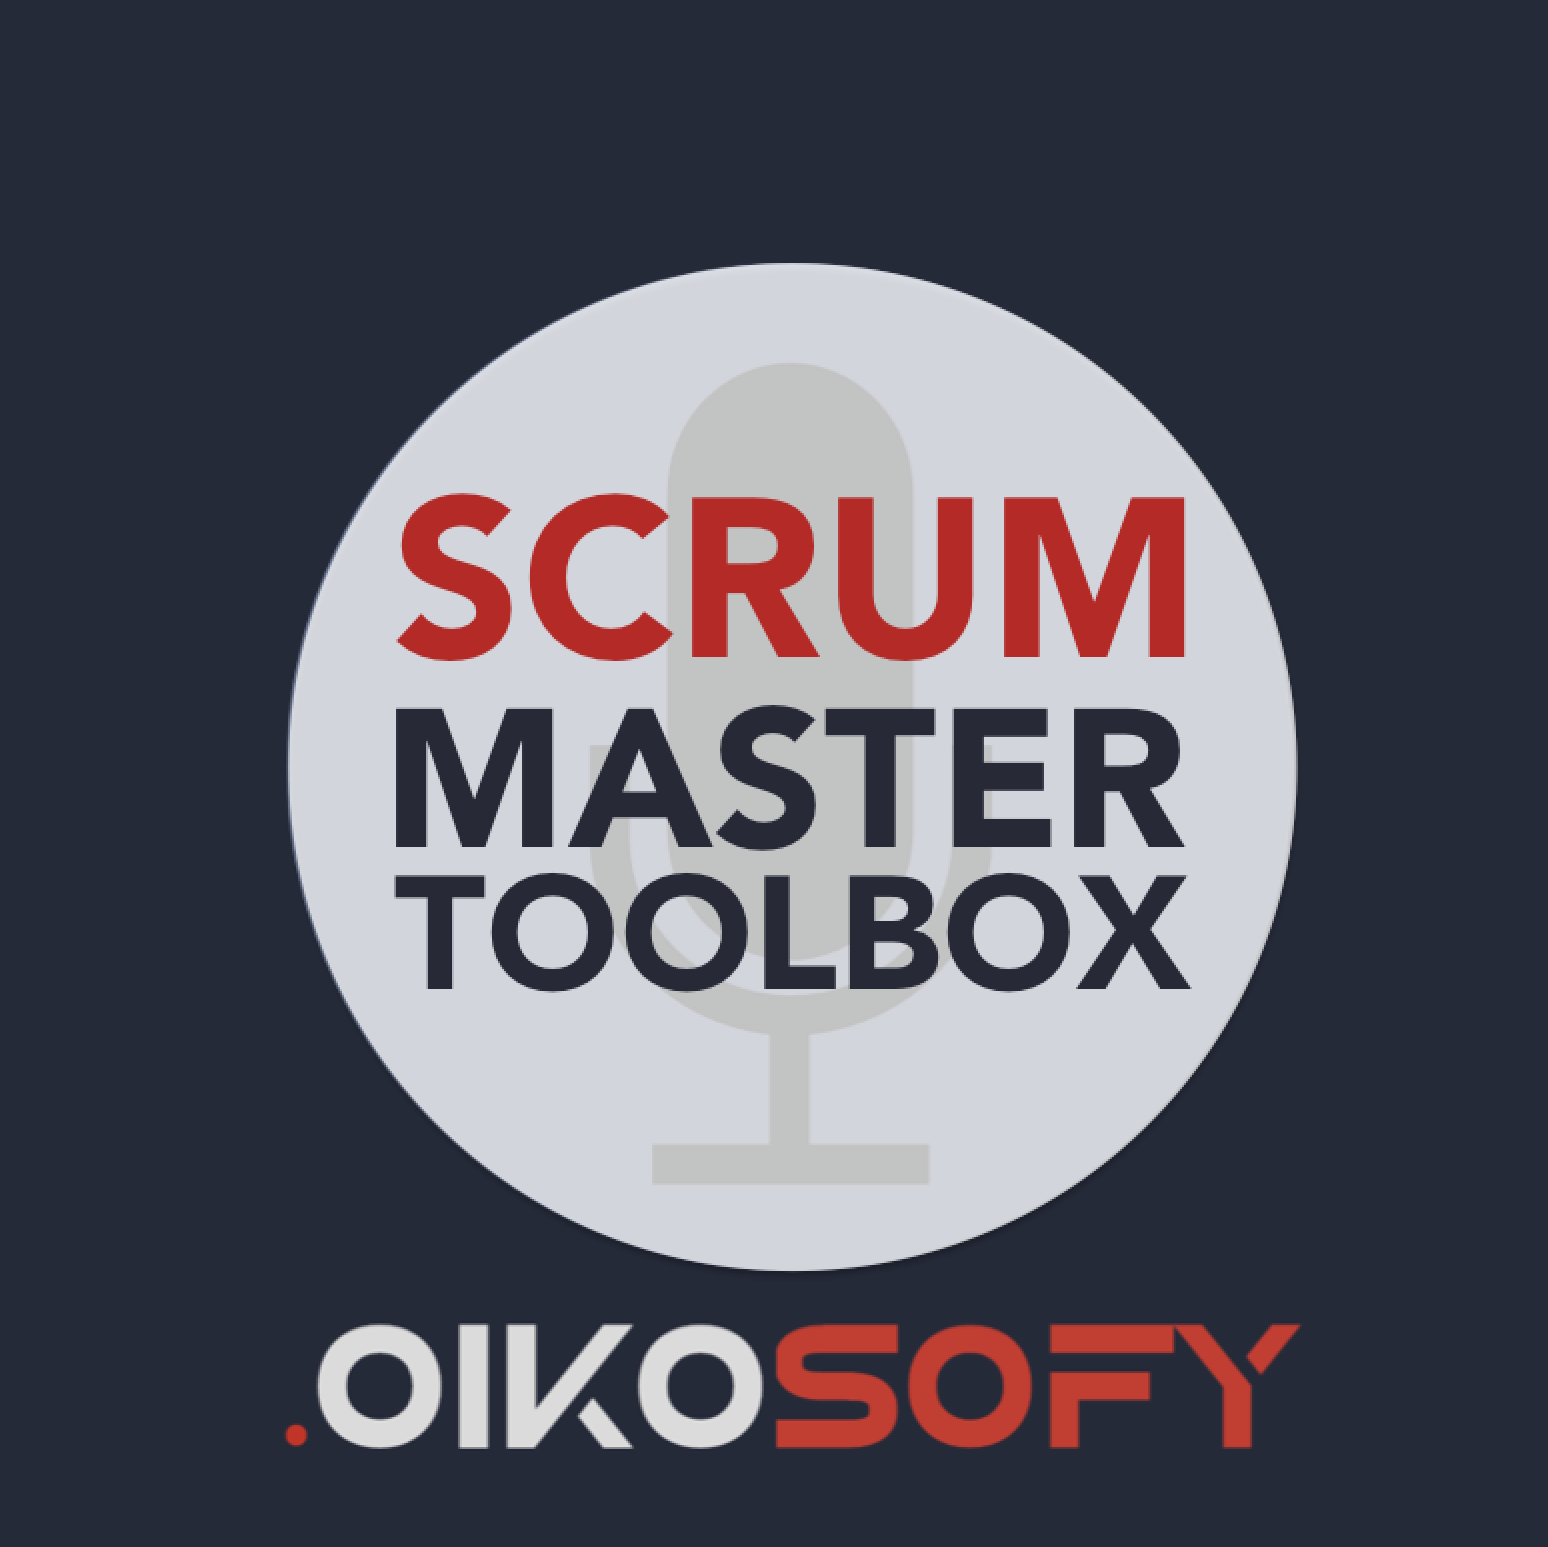 How the Perceived Status of the Scrum Master Role Affects Scrum Masters | Paulo Rebelo